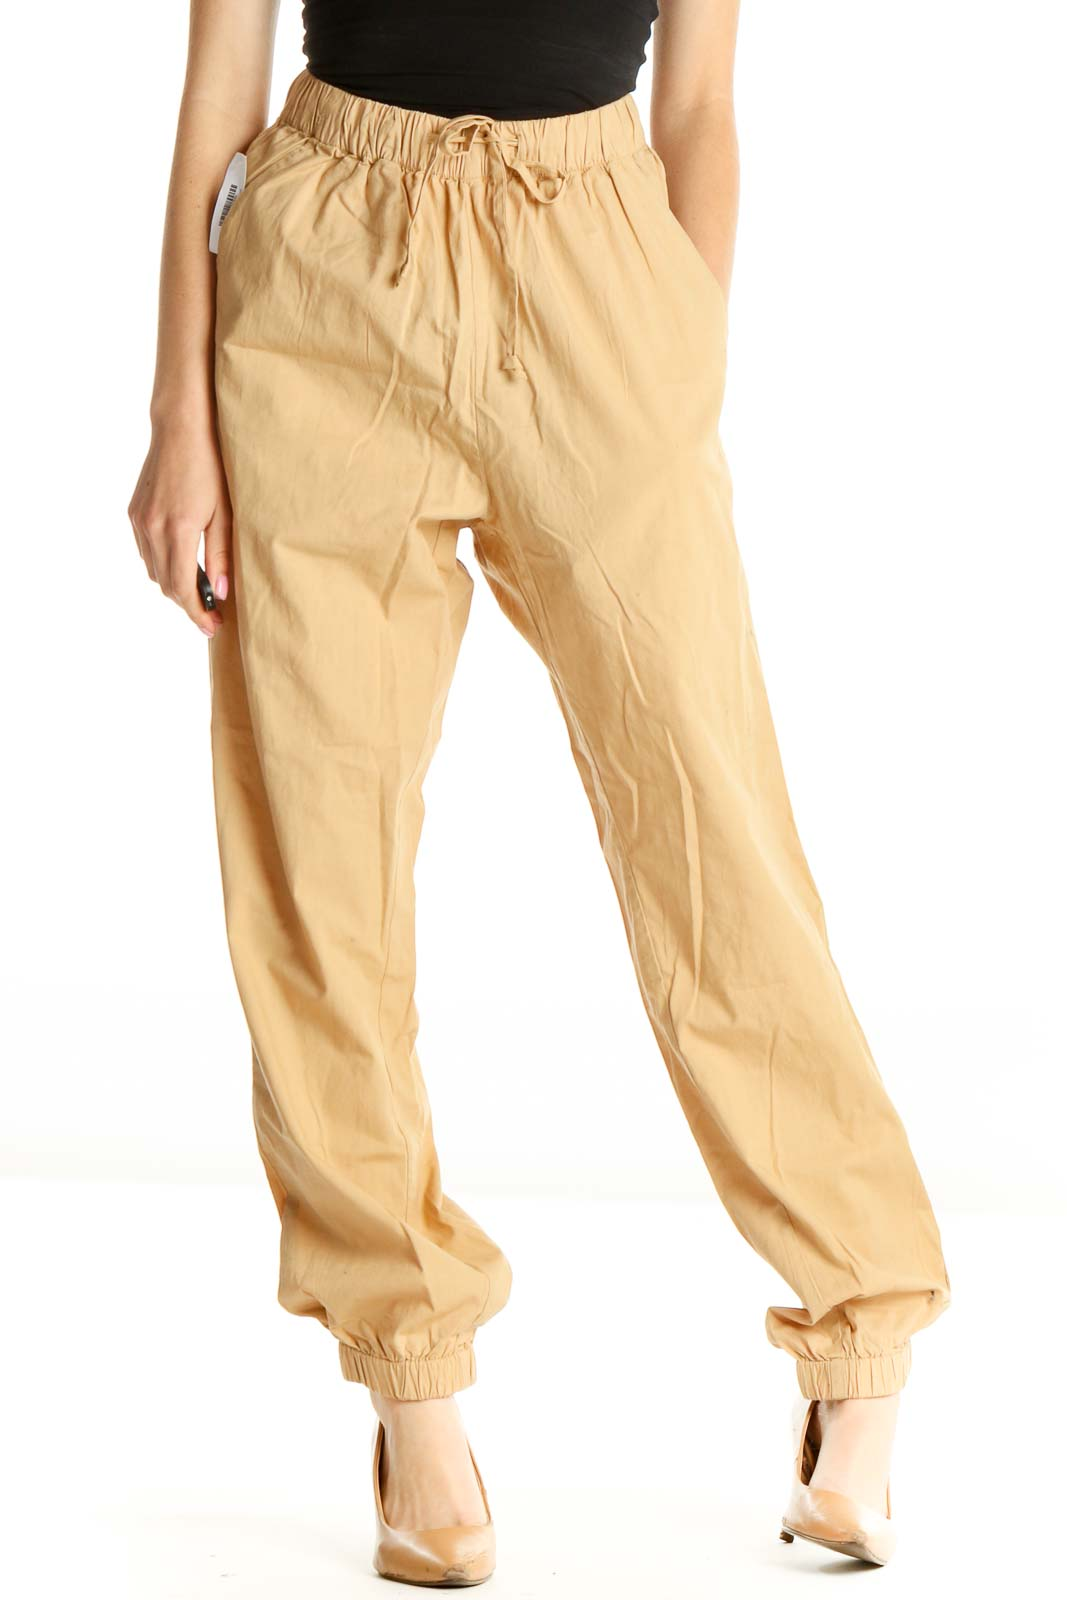 Beige Solid All Day Wear Cargos Pants Front